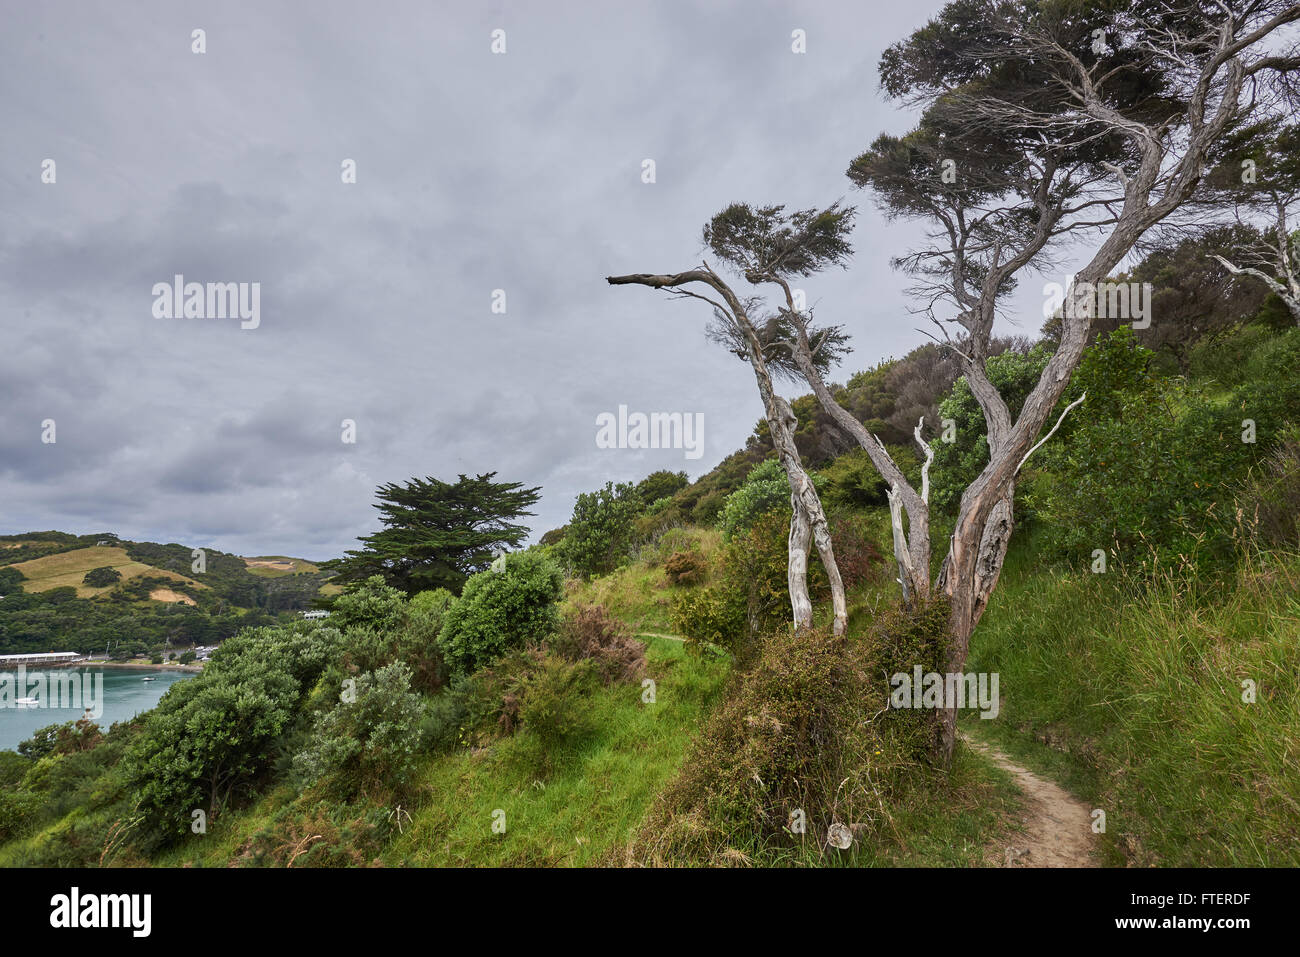 Scenery and landscapes across land and water in Waiheke Island New Zealand - Stock Image